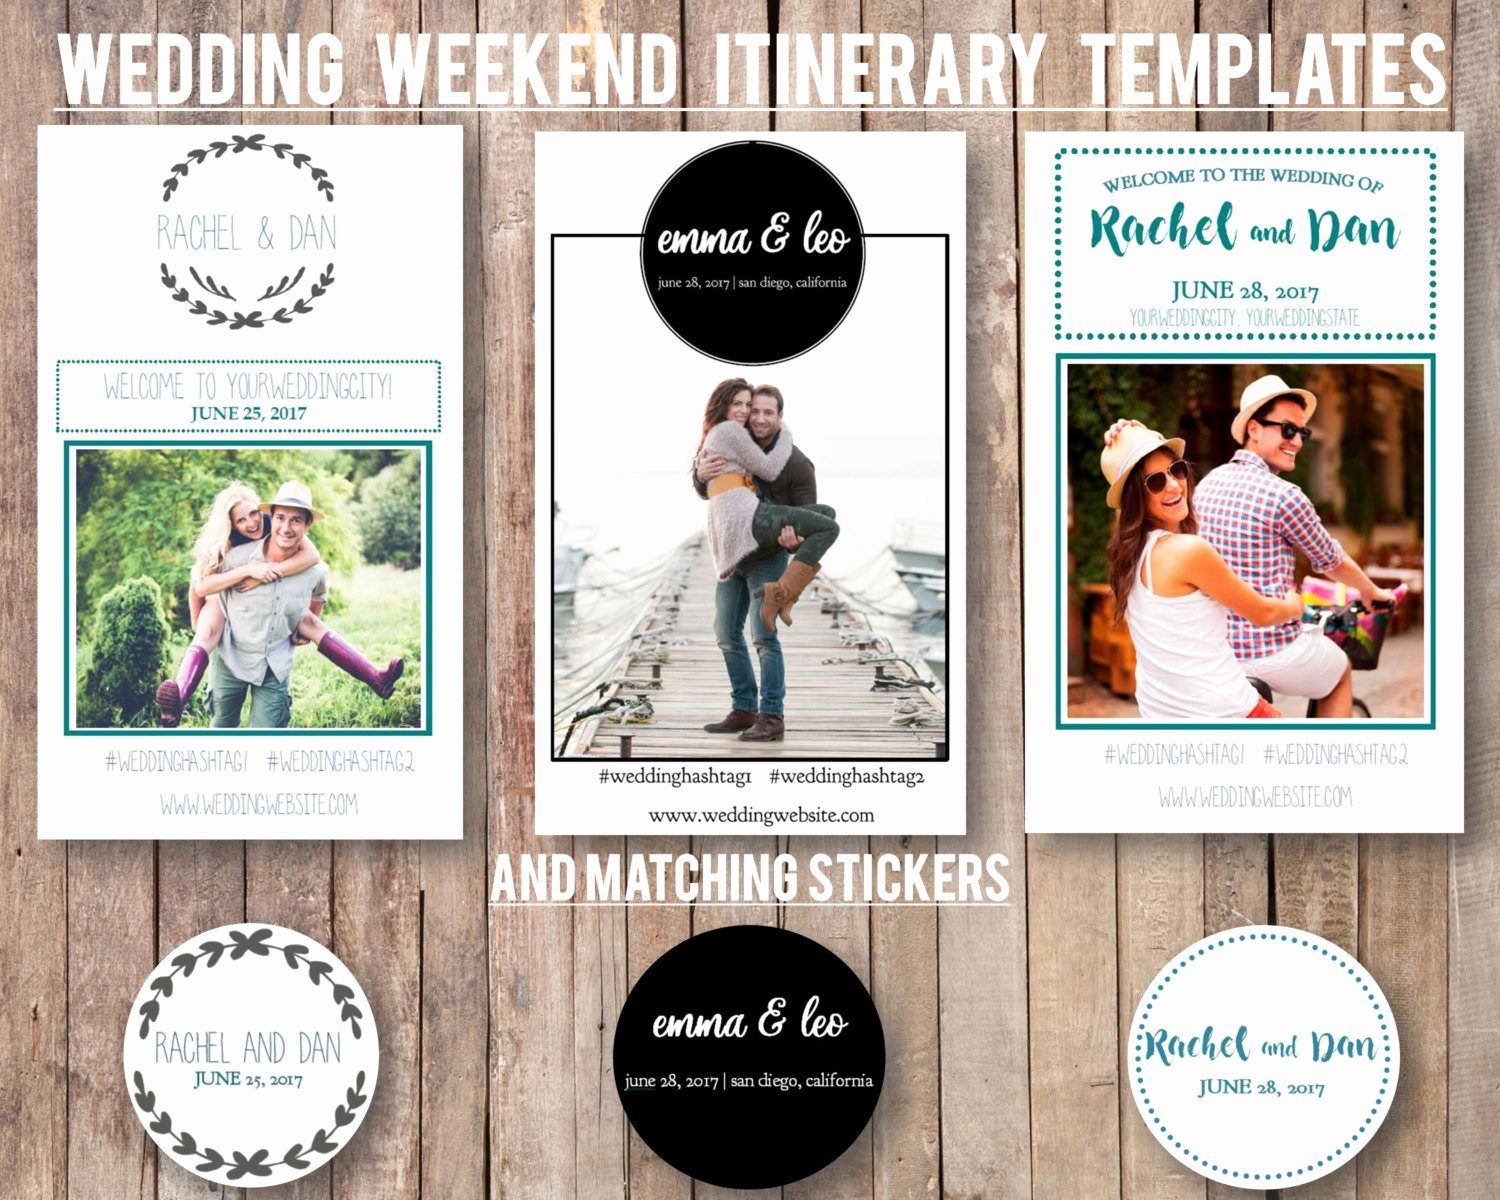 Wedding Weekend Itinerary Template Free Luxury Wedding Weekend Diy Itinerary Schedule Template by